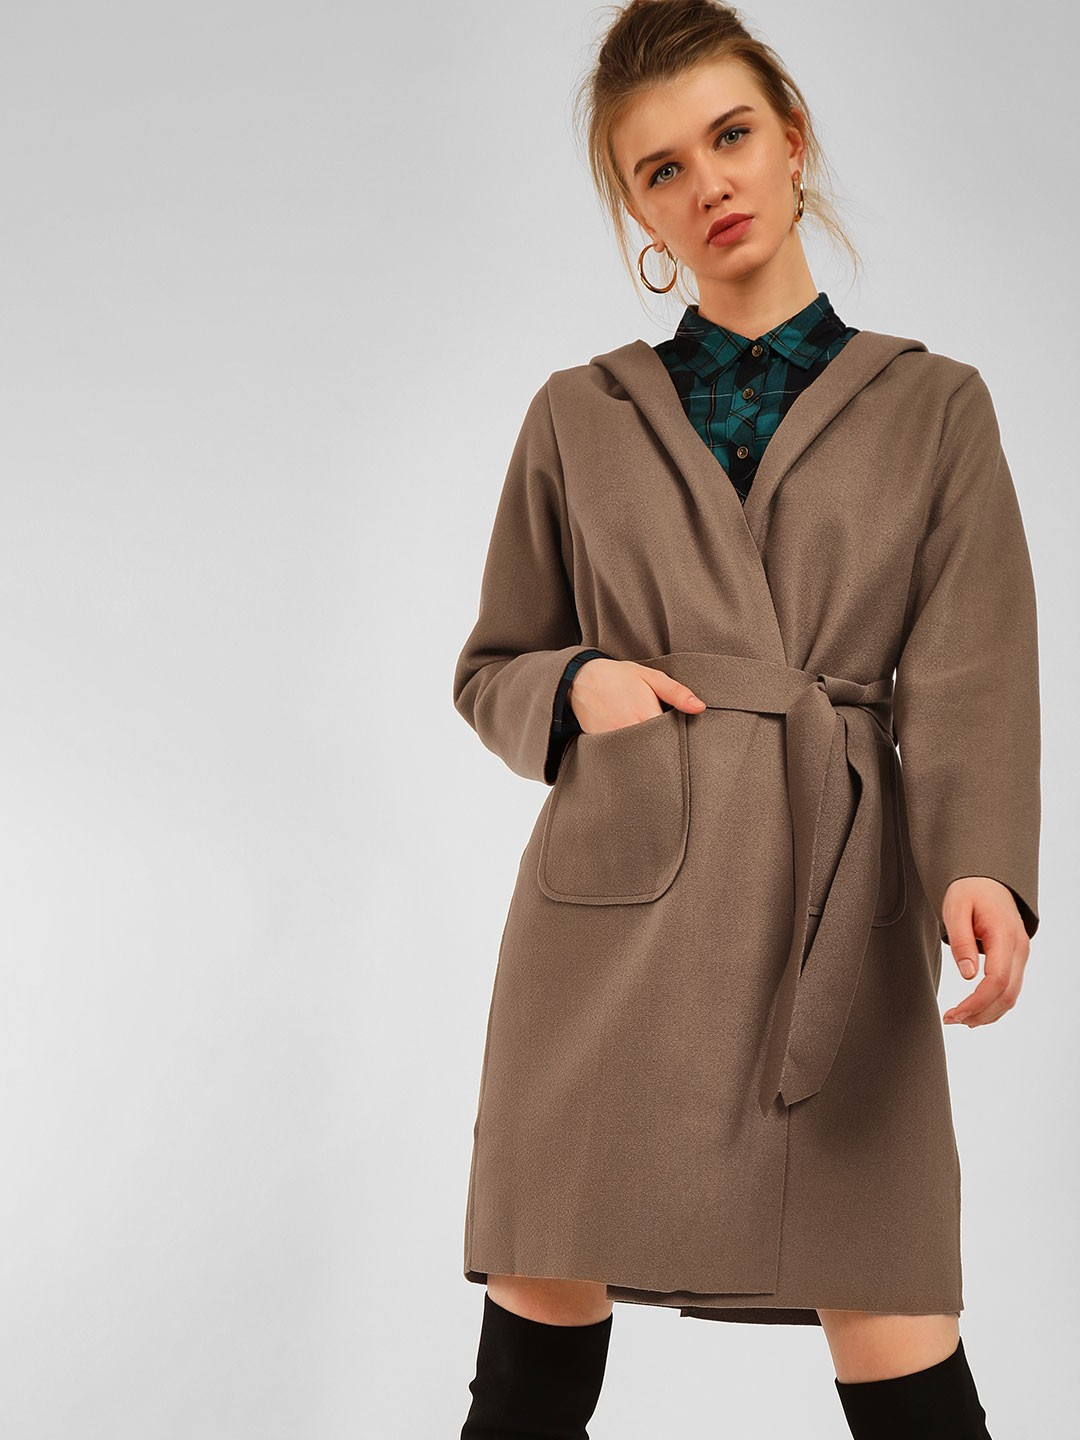 Origami Lily Camel Hooded & Belted Longline Overcoat 1